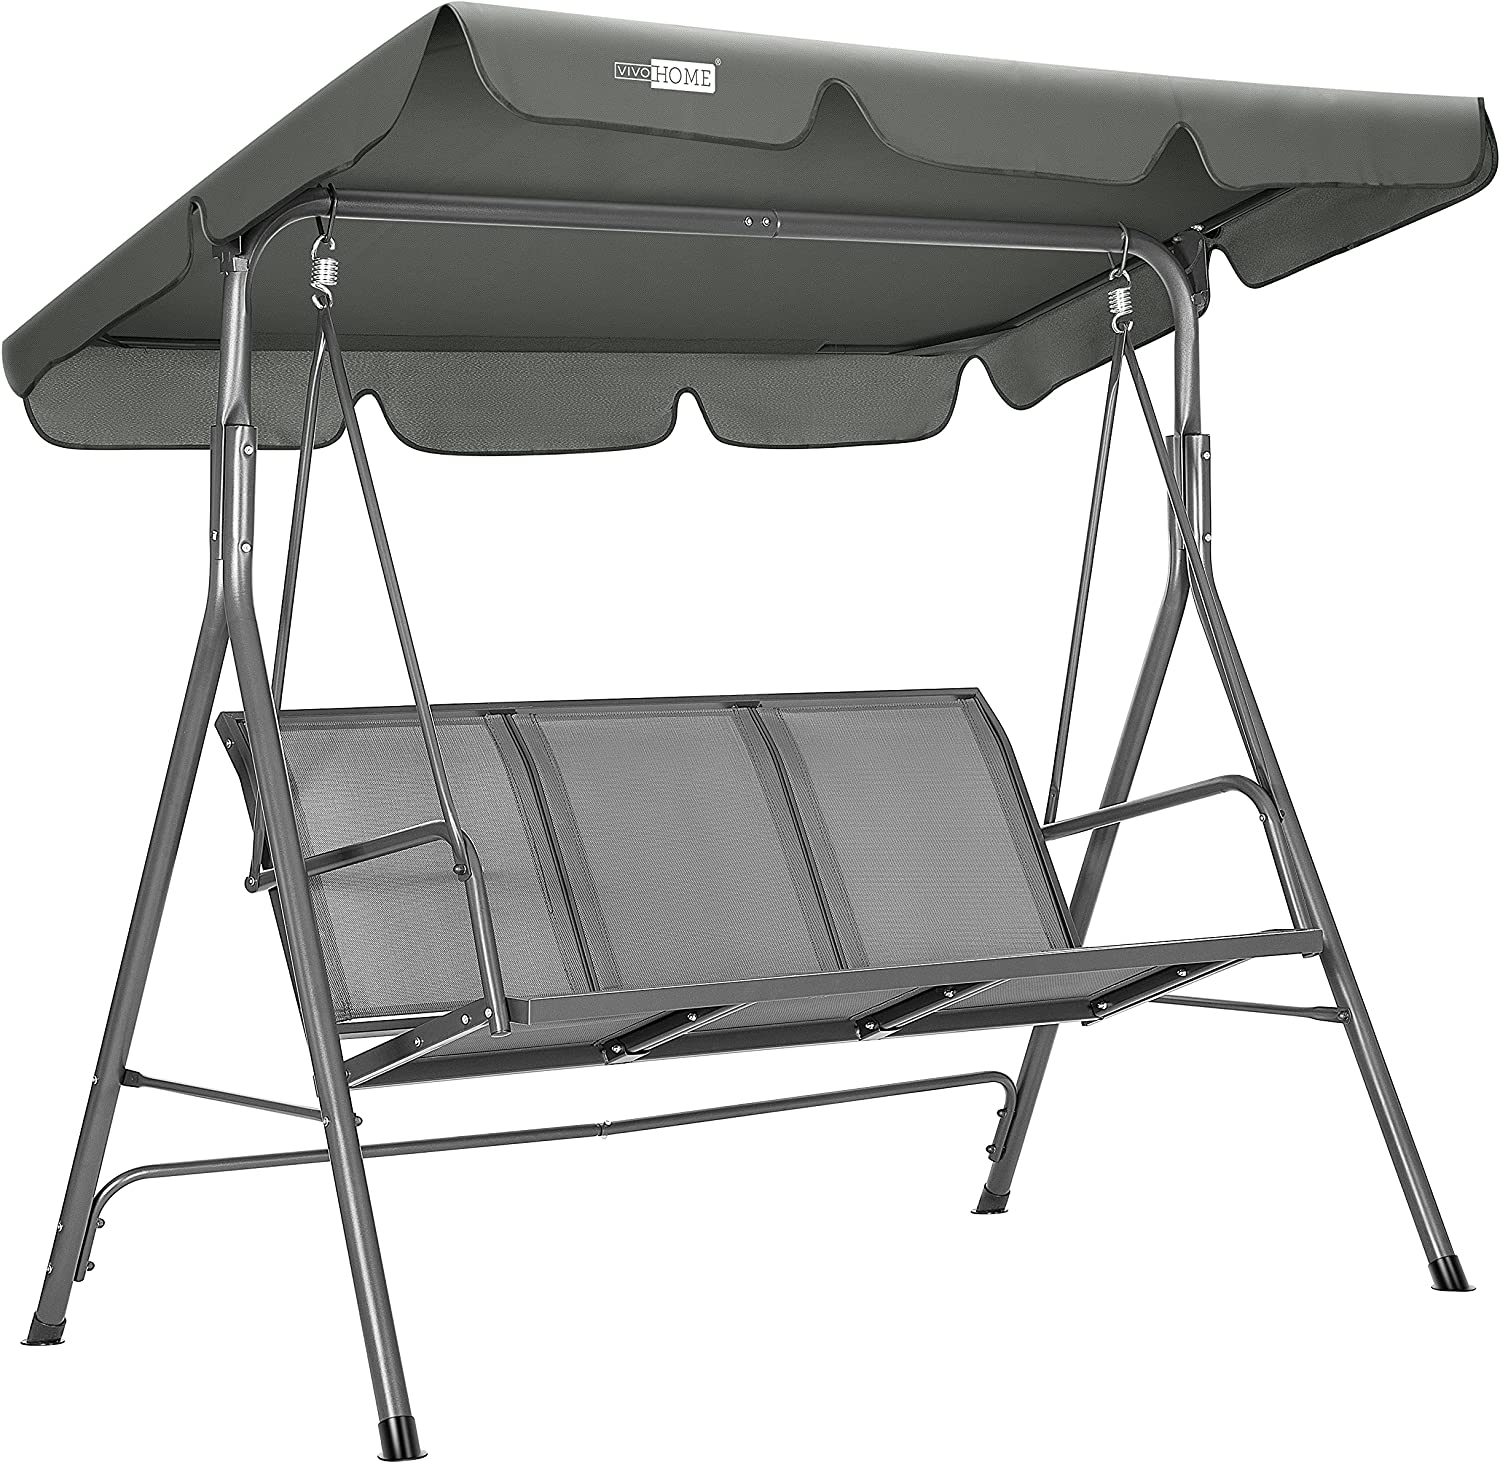 VIVOHOME 3-Seater Outdoor Adjustable Canopy Swing Chair with Armrests, Patio Loveseat Glider Bench for Garden, Poolside, Balcony & Backyard, Textilene Fabric, Steel Frame - Gray